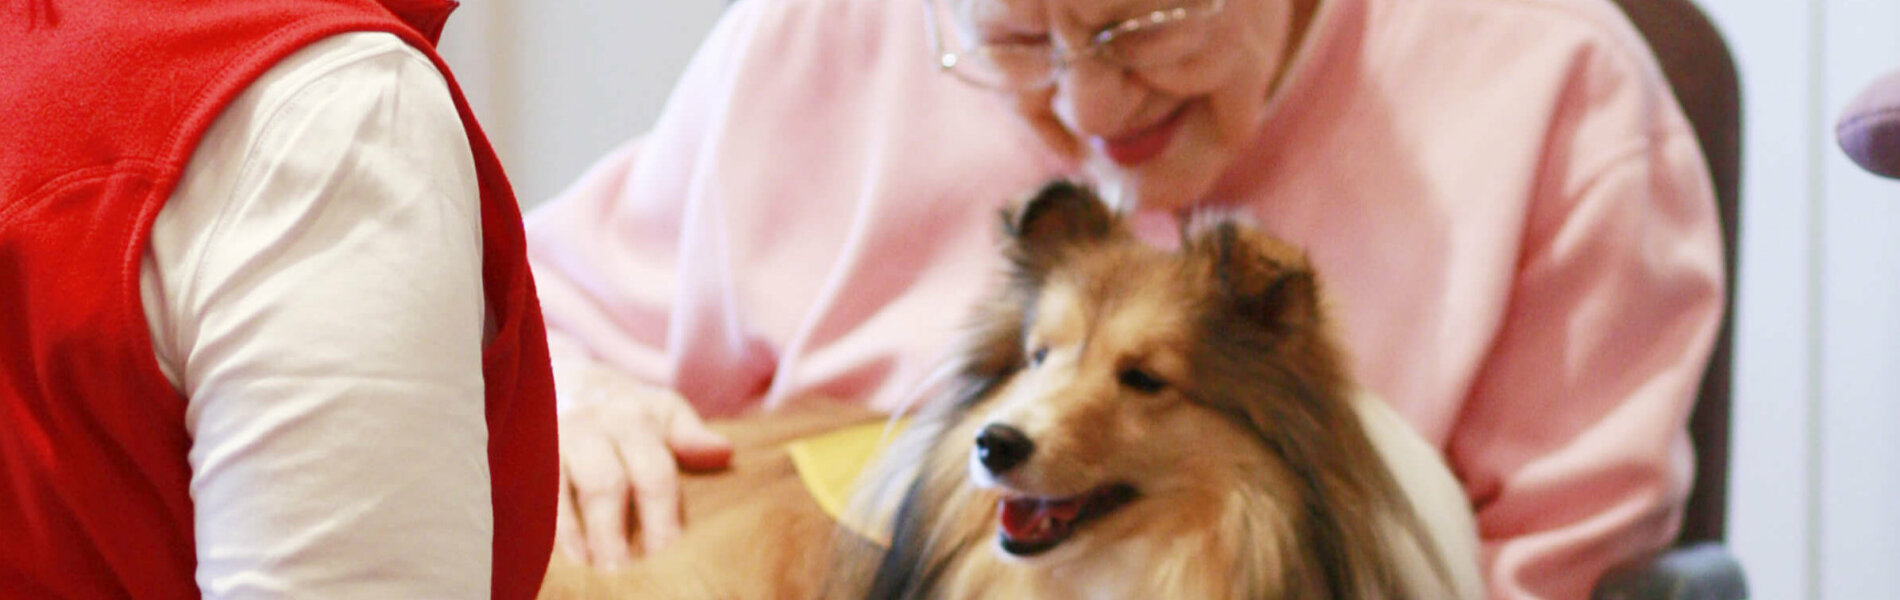 A senior woman holds a therapy sheltie with guidance from the handler